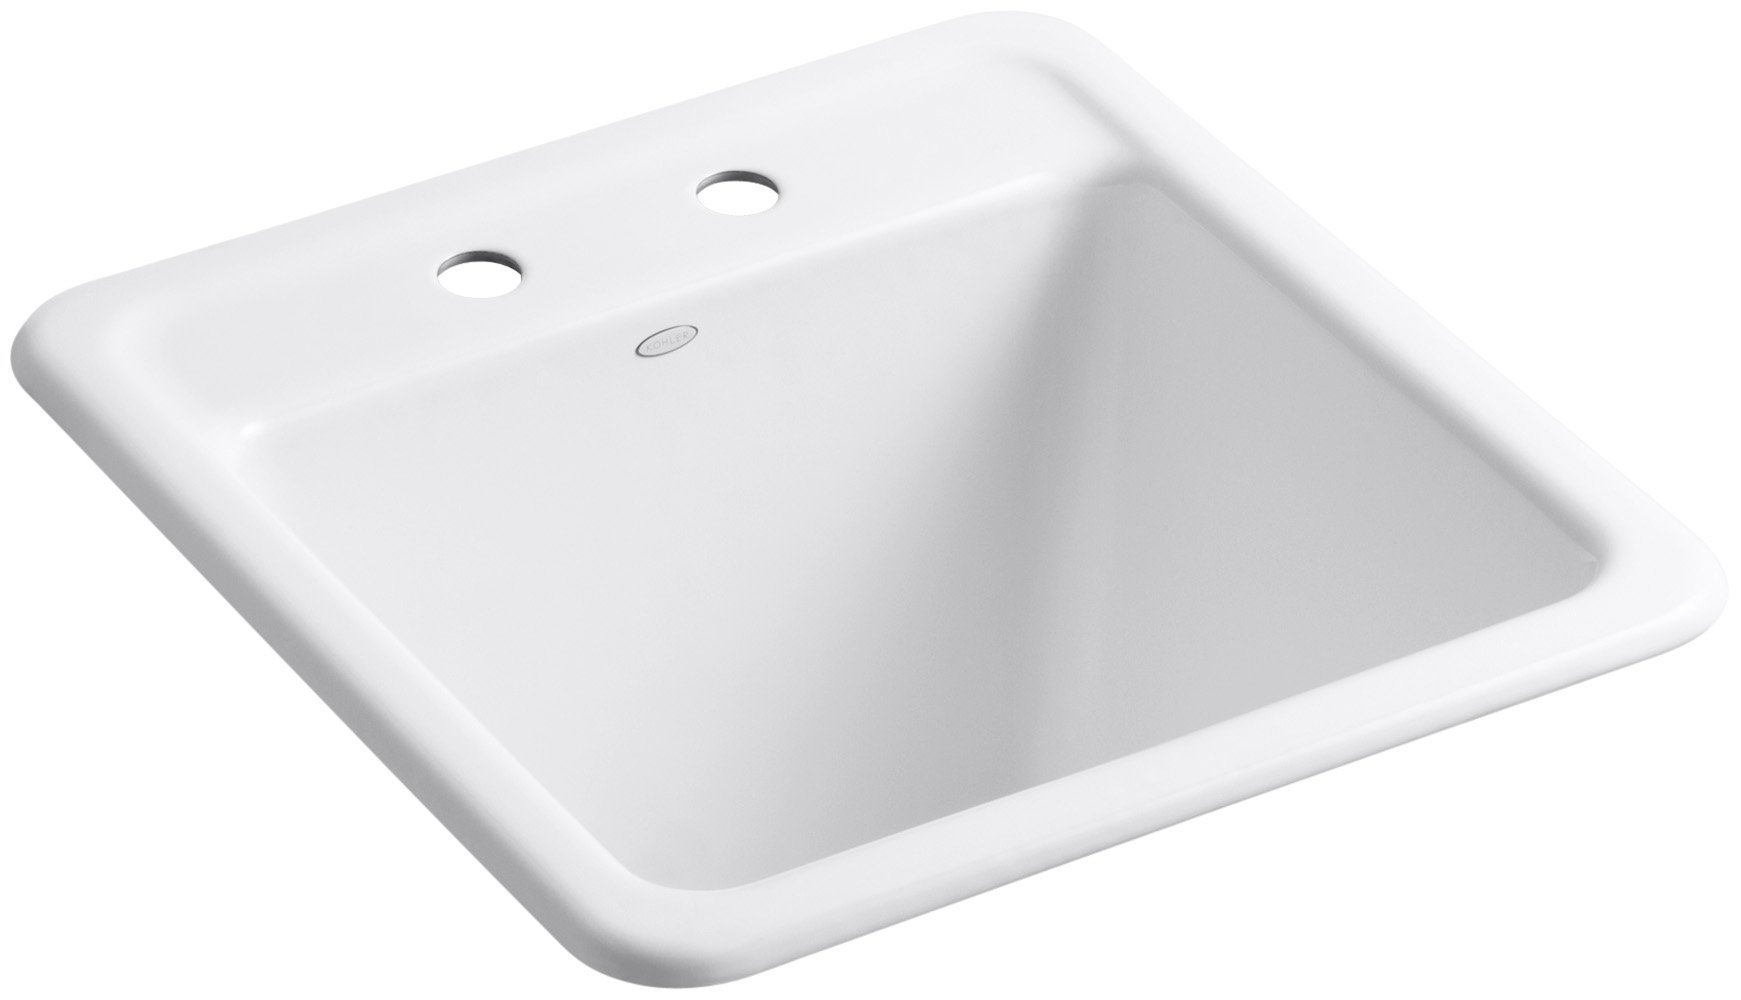 KOHLER K-19022-2-0 Park Falls Top-Mount/Undermount Utility Sink with Two Faucet Holes, White by Kohler